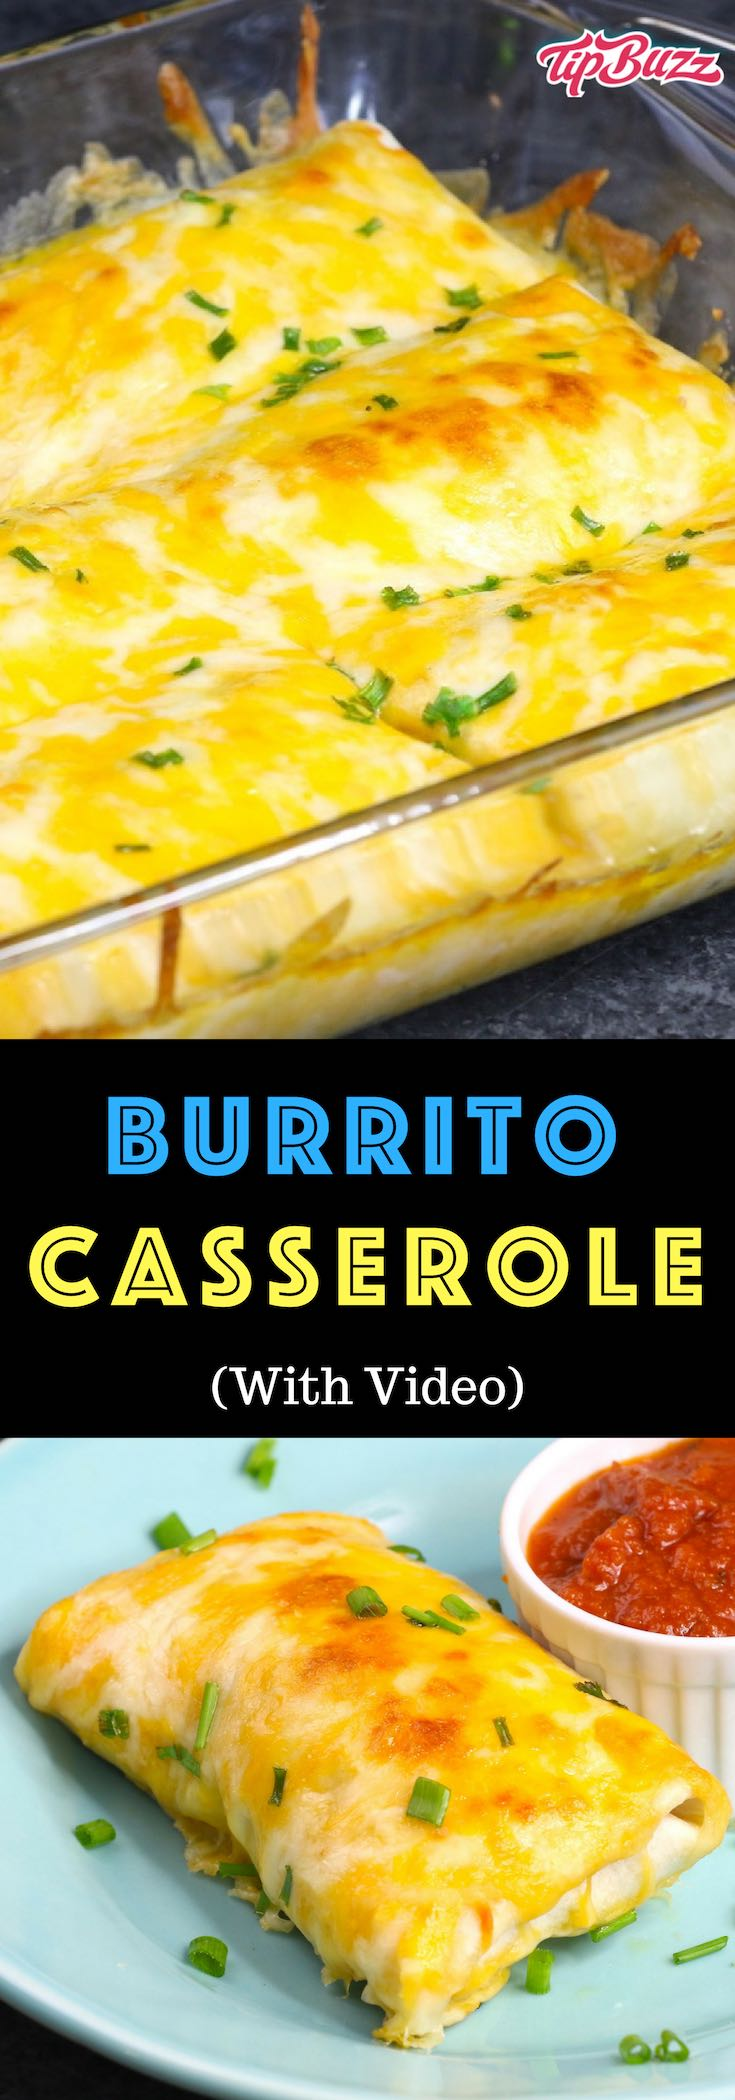 Burrito Casserole is an easy family favorite recipe! Lean ground beef is cooked with beans, onions, corn and seasonings, and then wrapped in flour tortillas. The burritos are placed in a baking dish, covered with cheese and baked until golden brown.